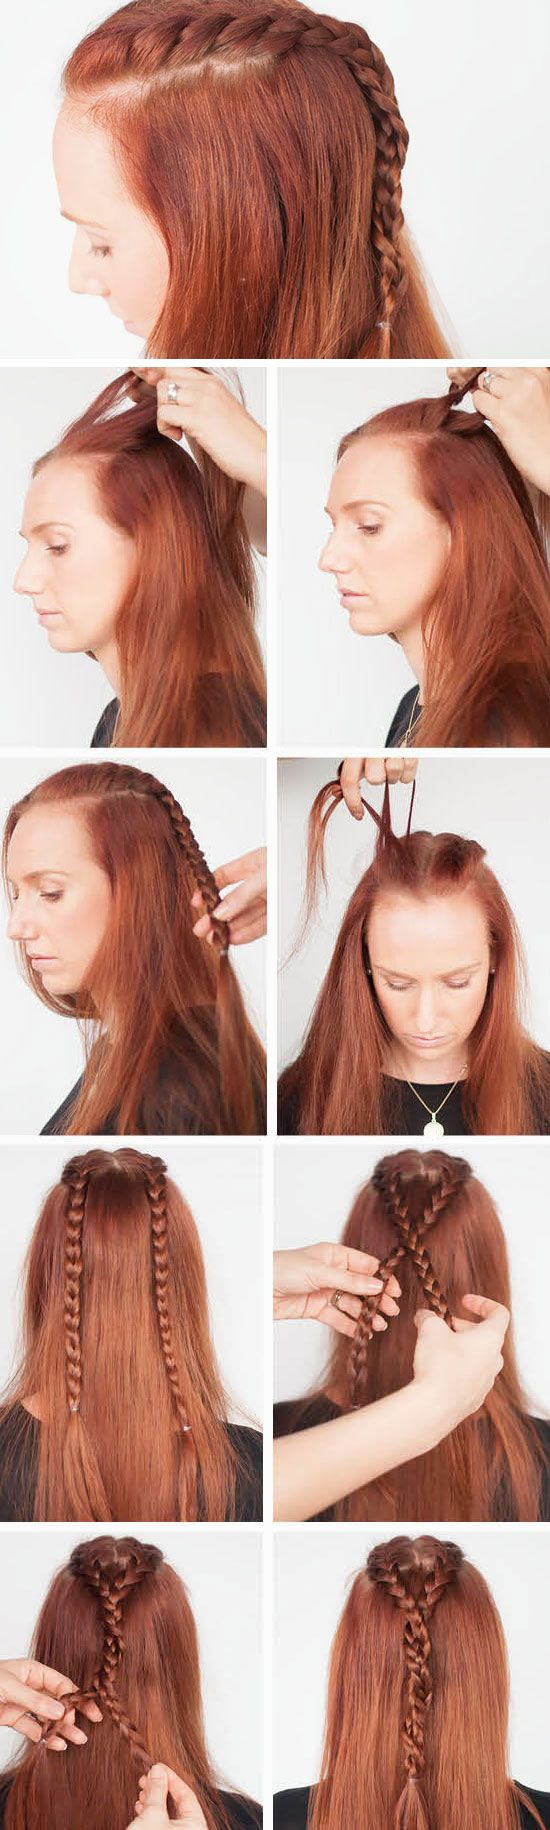 Hairstyles Games 18 Diy Game Of Thrones Inspired Hairstyles  Pinterest  Diy Games